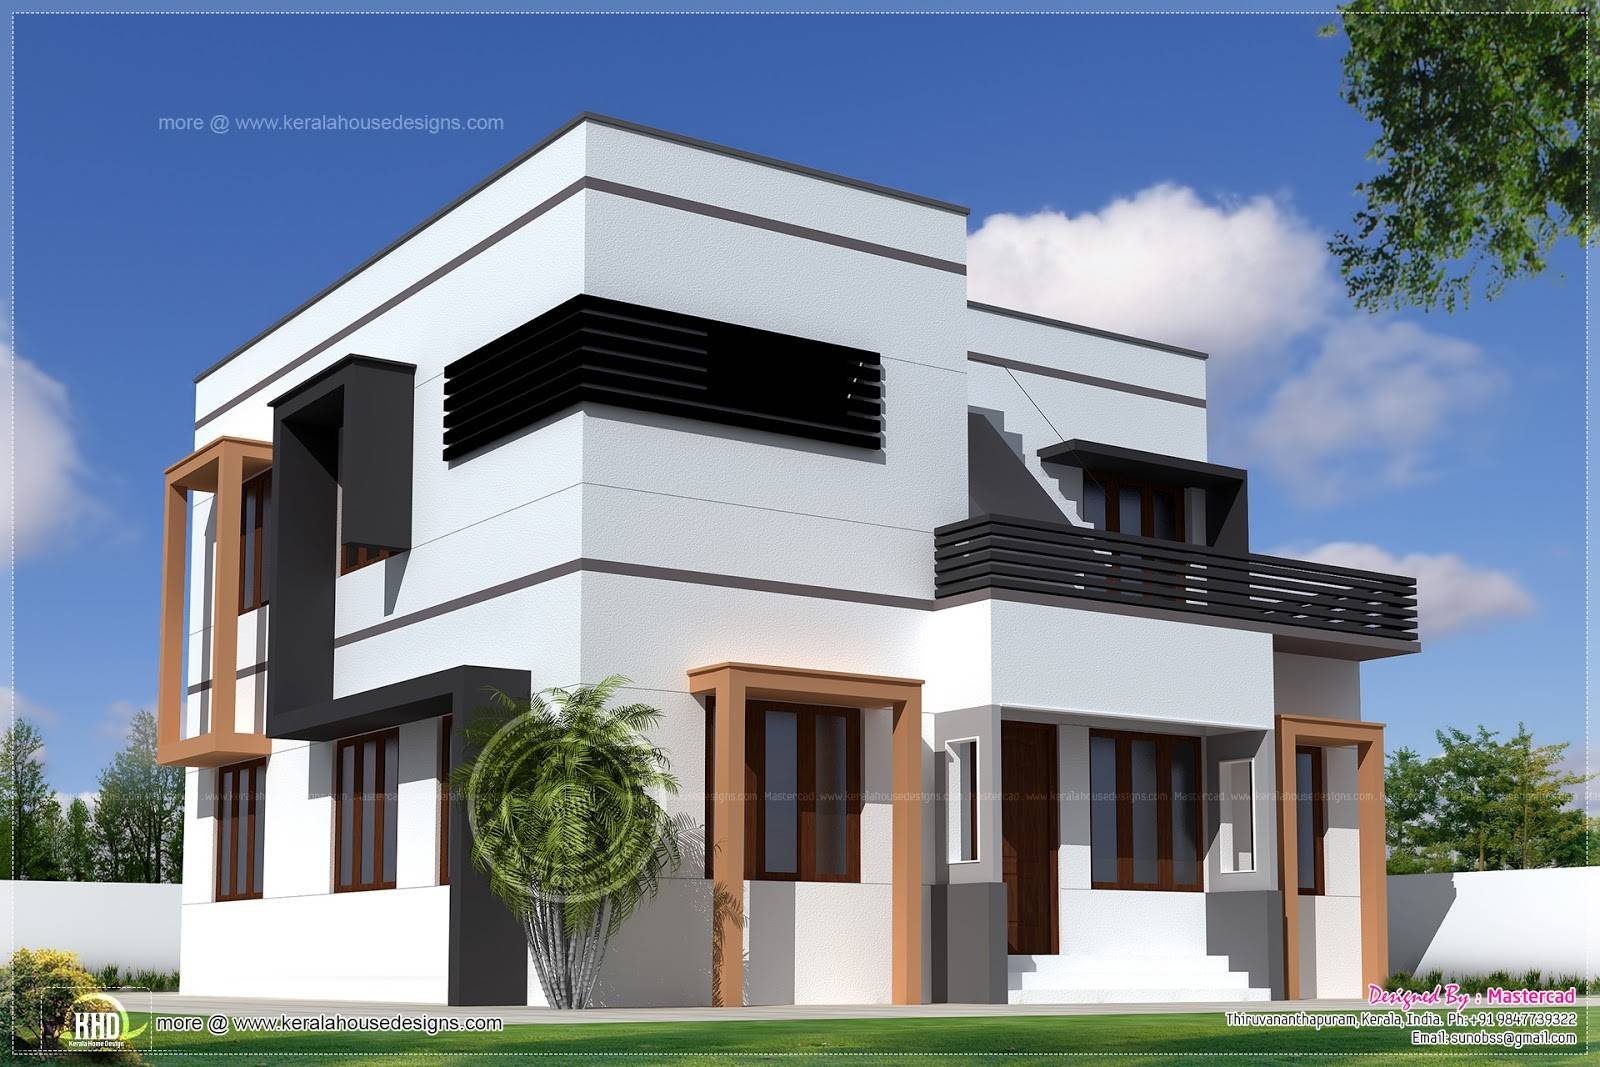 Exterior House Design simple modern house exterior. modern homes exterior. design modern